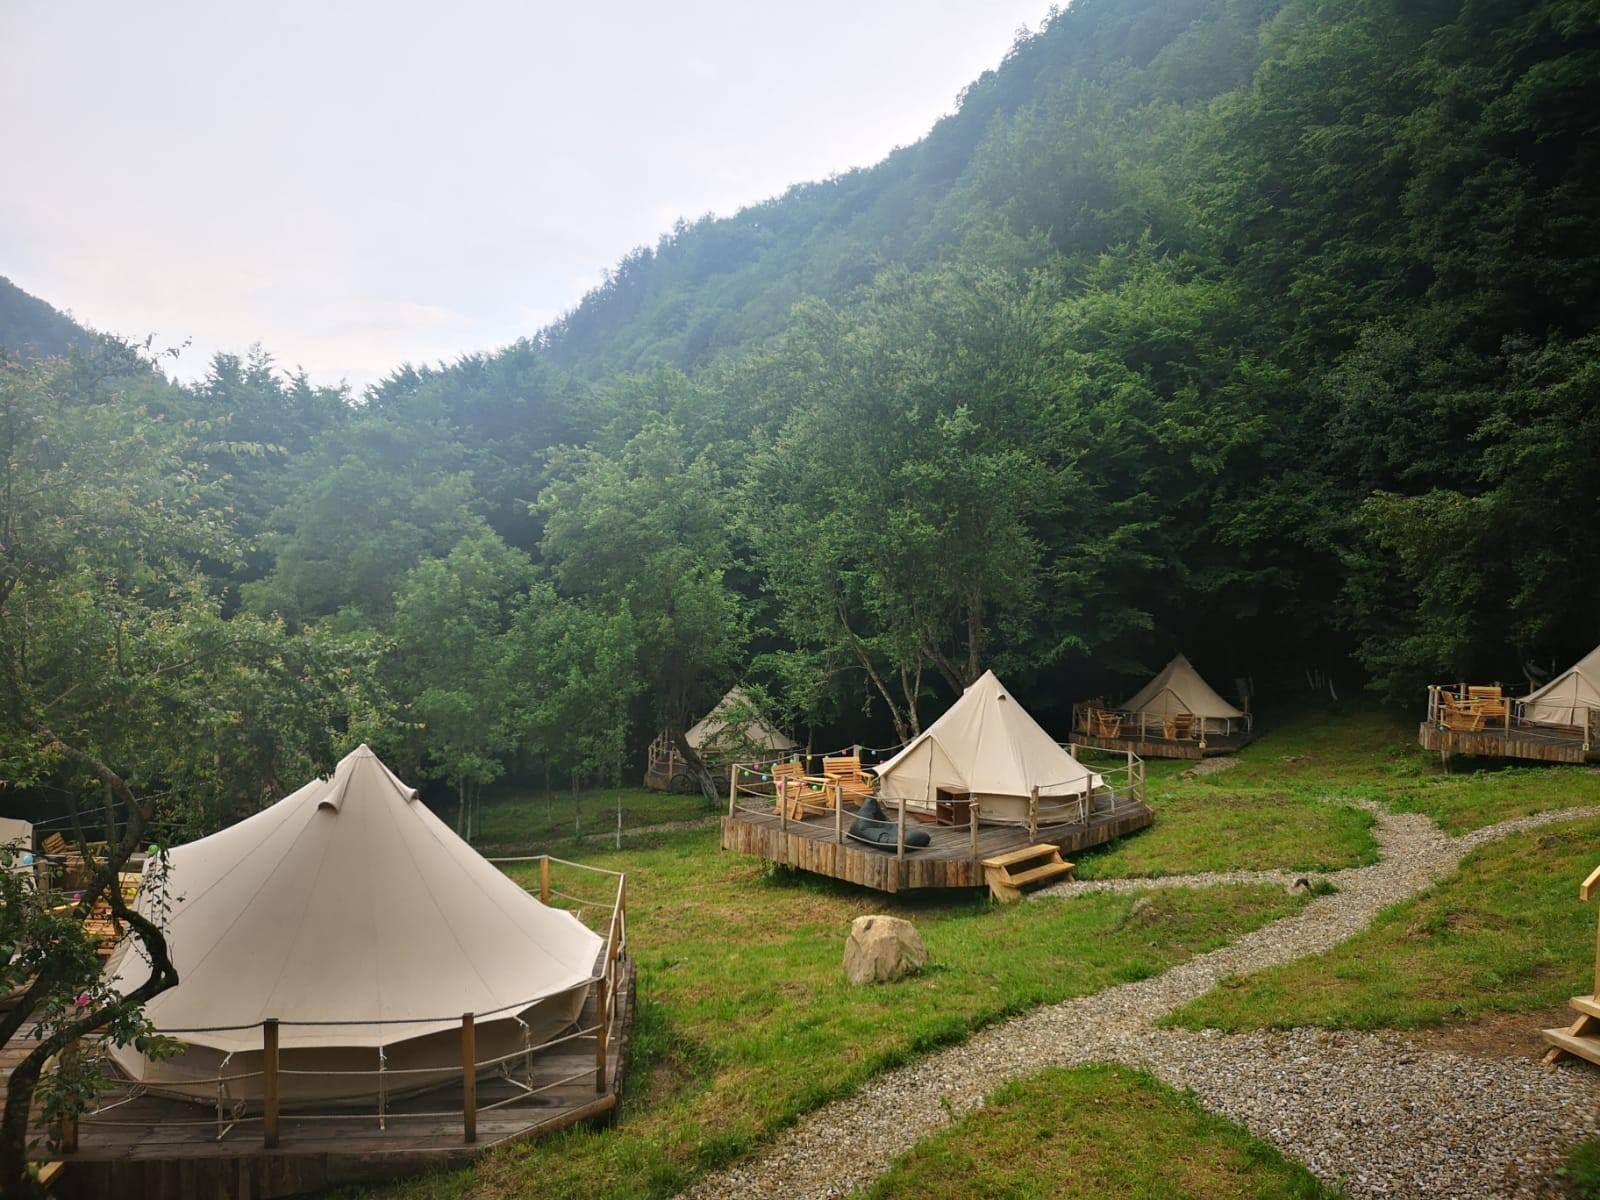 View over the Green Camp Glamping Resort